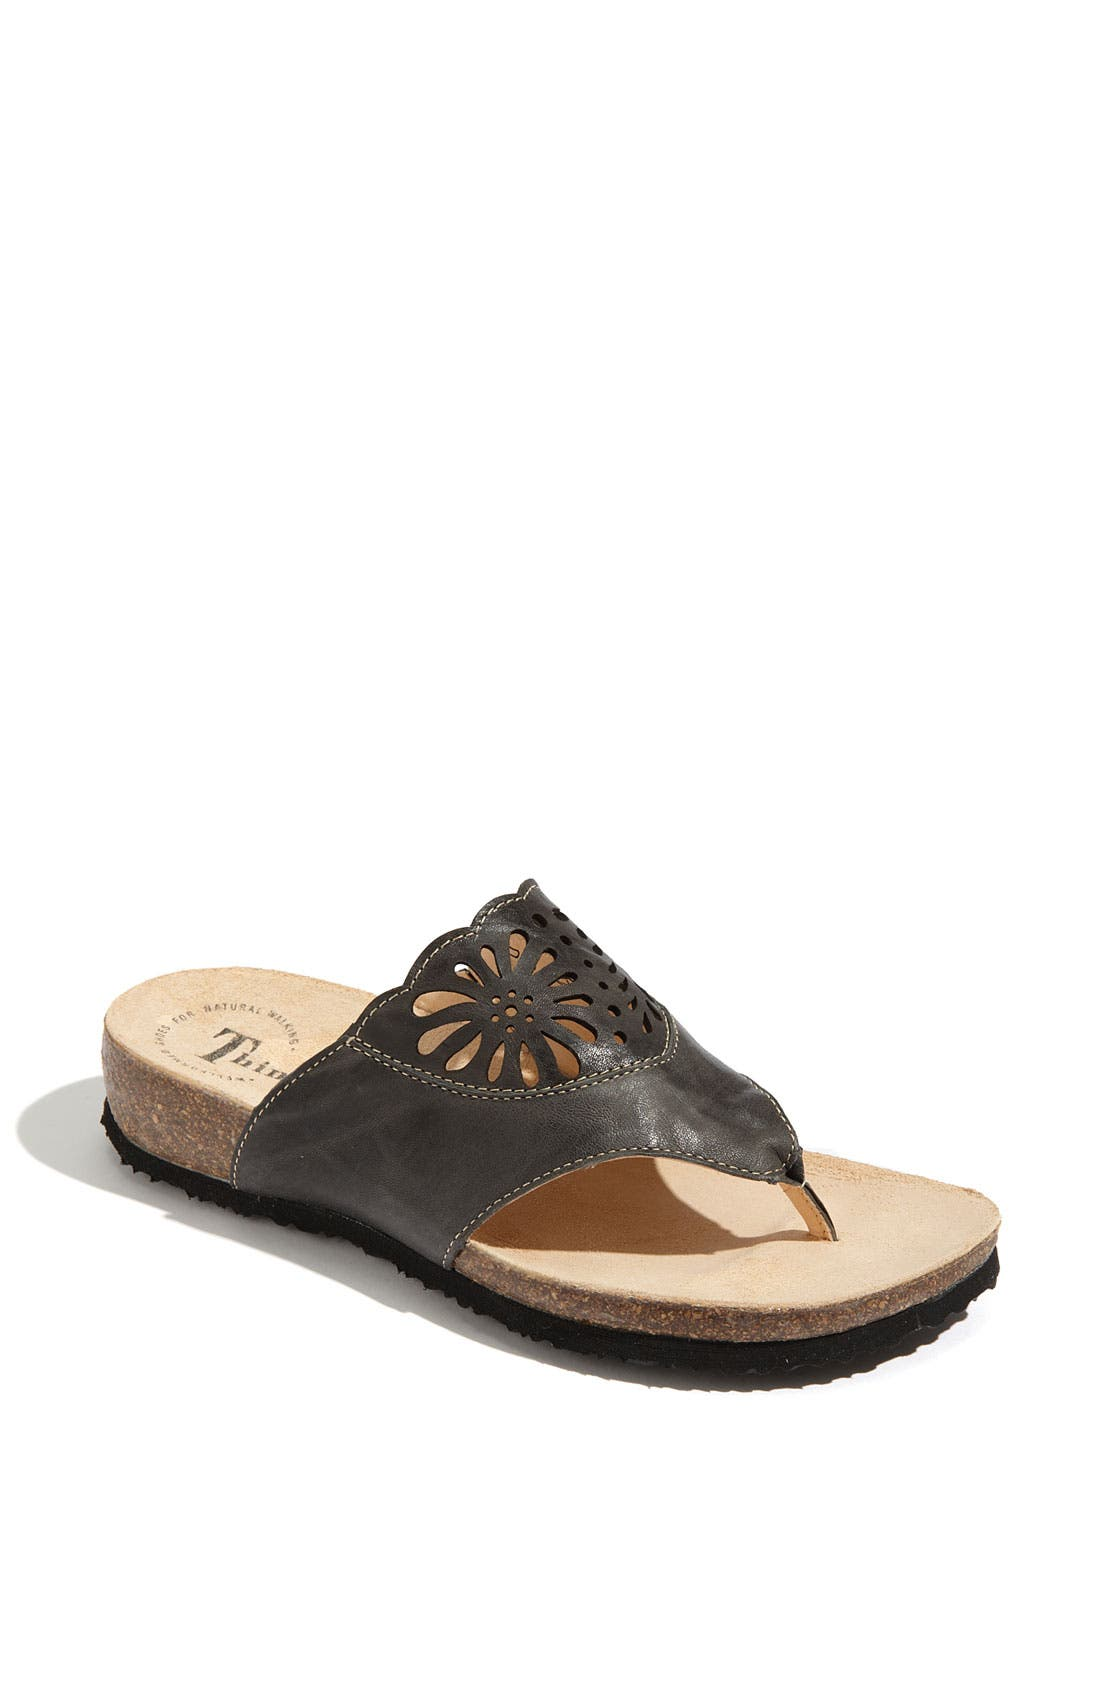 Alternate Image 1 Selected - Think! 'Julia' Thong Sandal